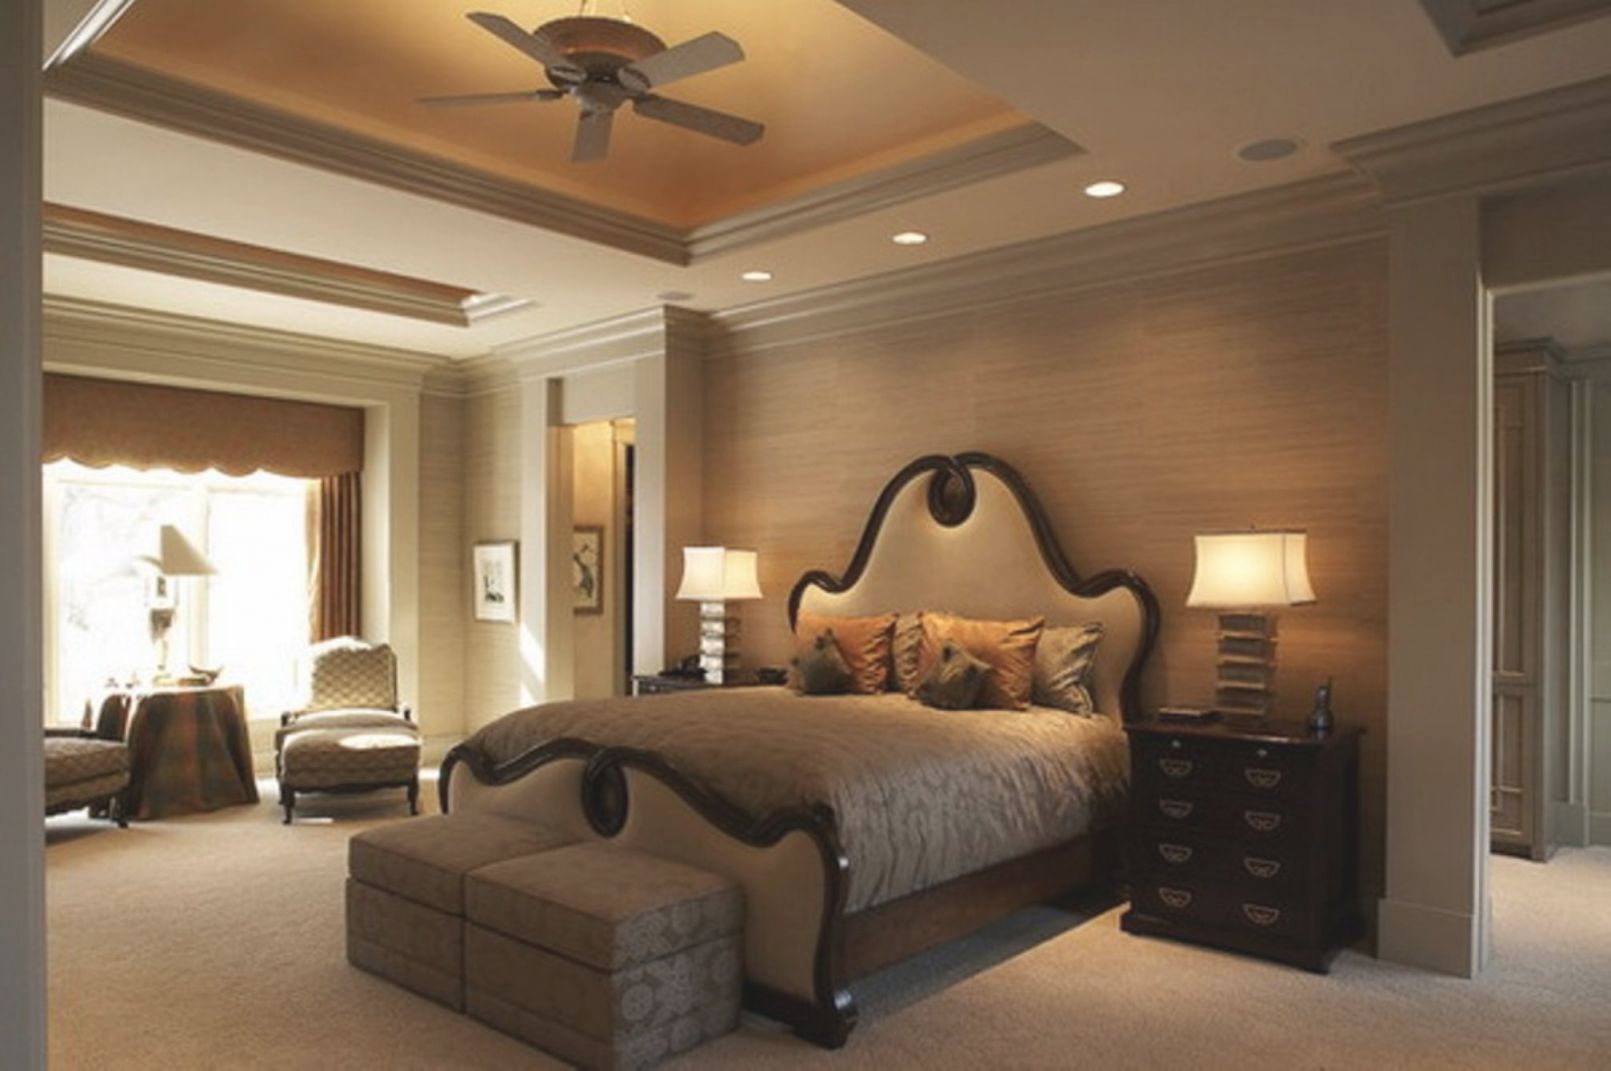 Bedroom Contemporary Ceiling Simple Designs For Master throughout Home Decor Ideas For Master Bedroom